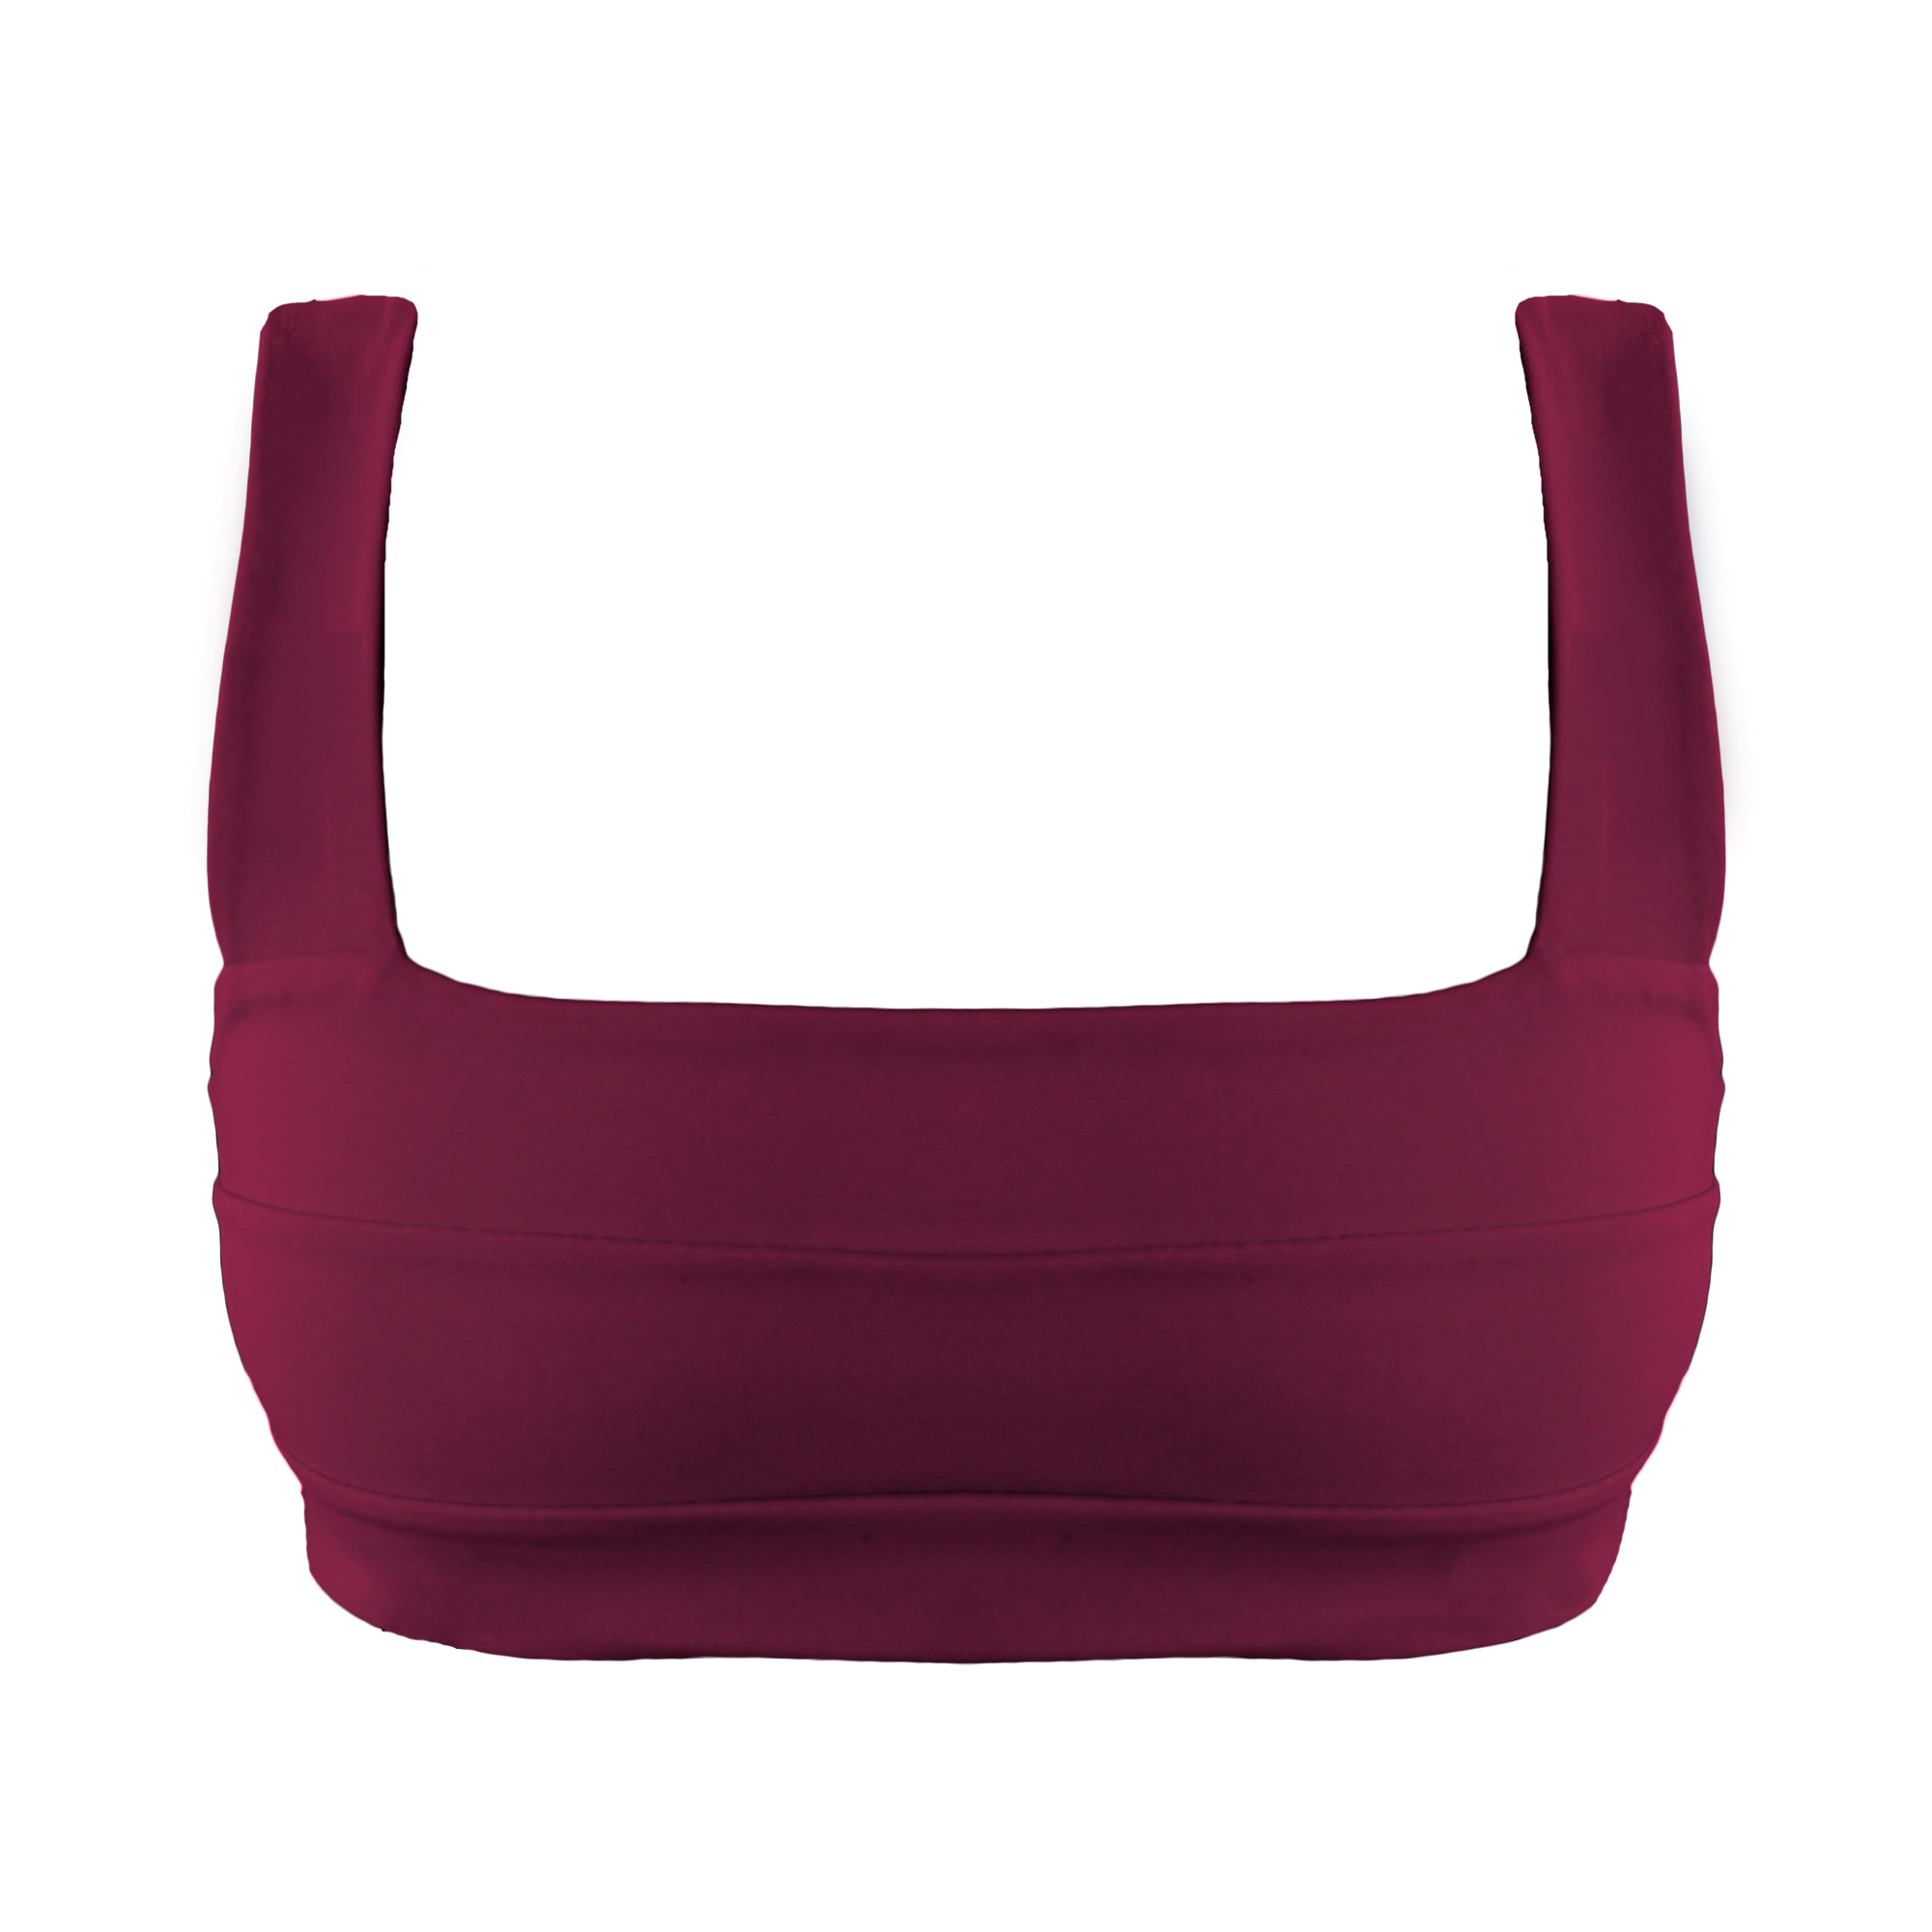 Triple Top - Wine Red | 38,95€ (Aktionspreis)